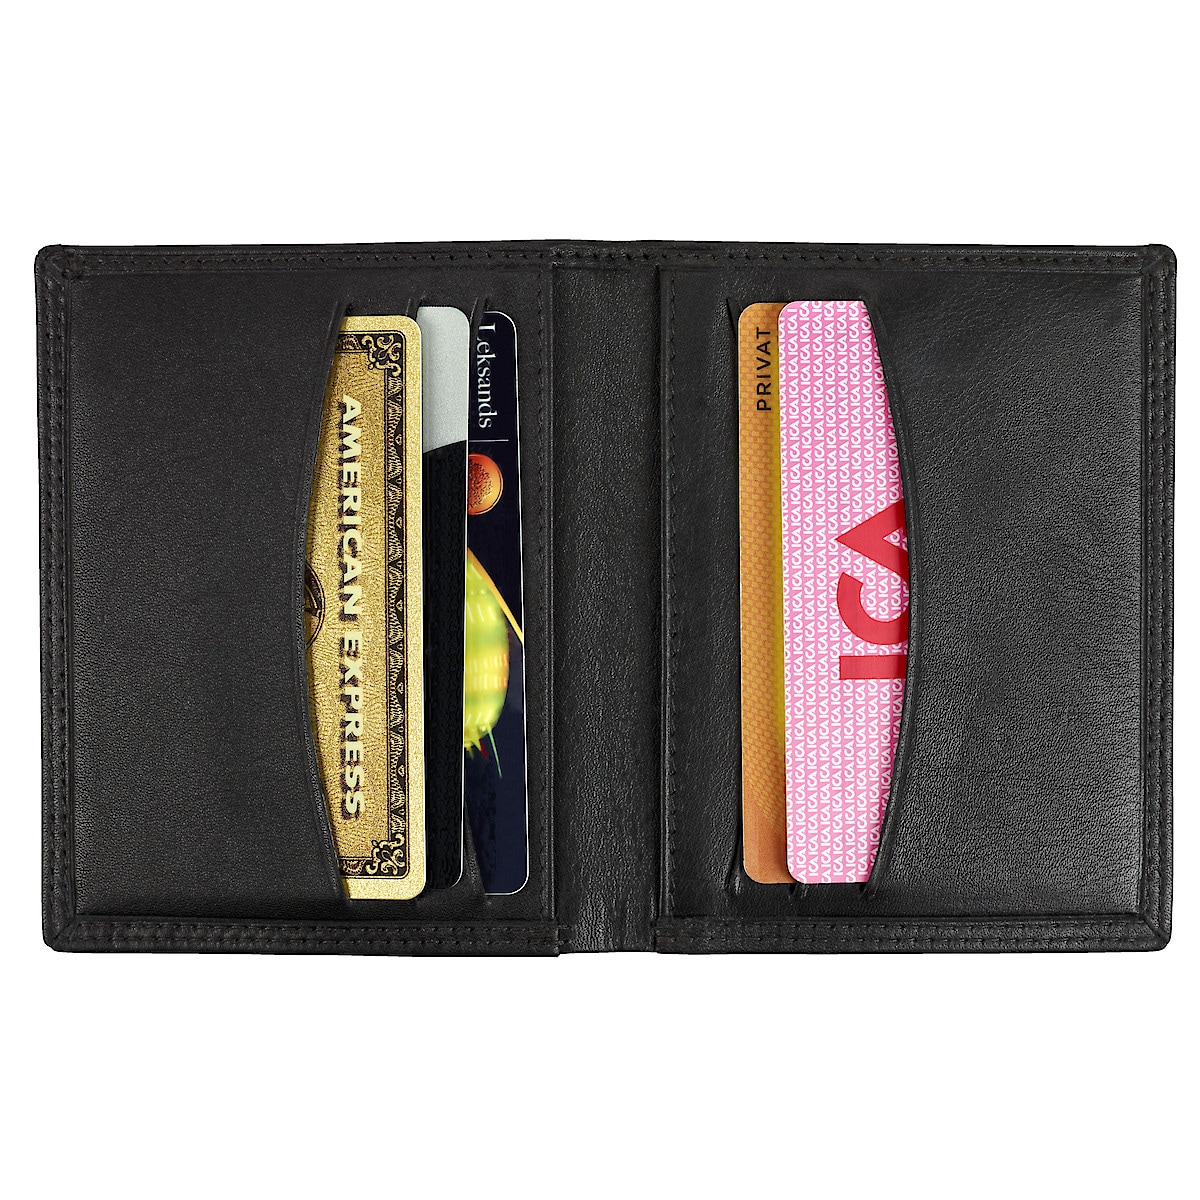 Cantoni Credit Card Wallet